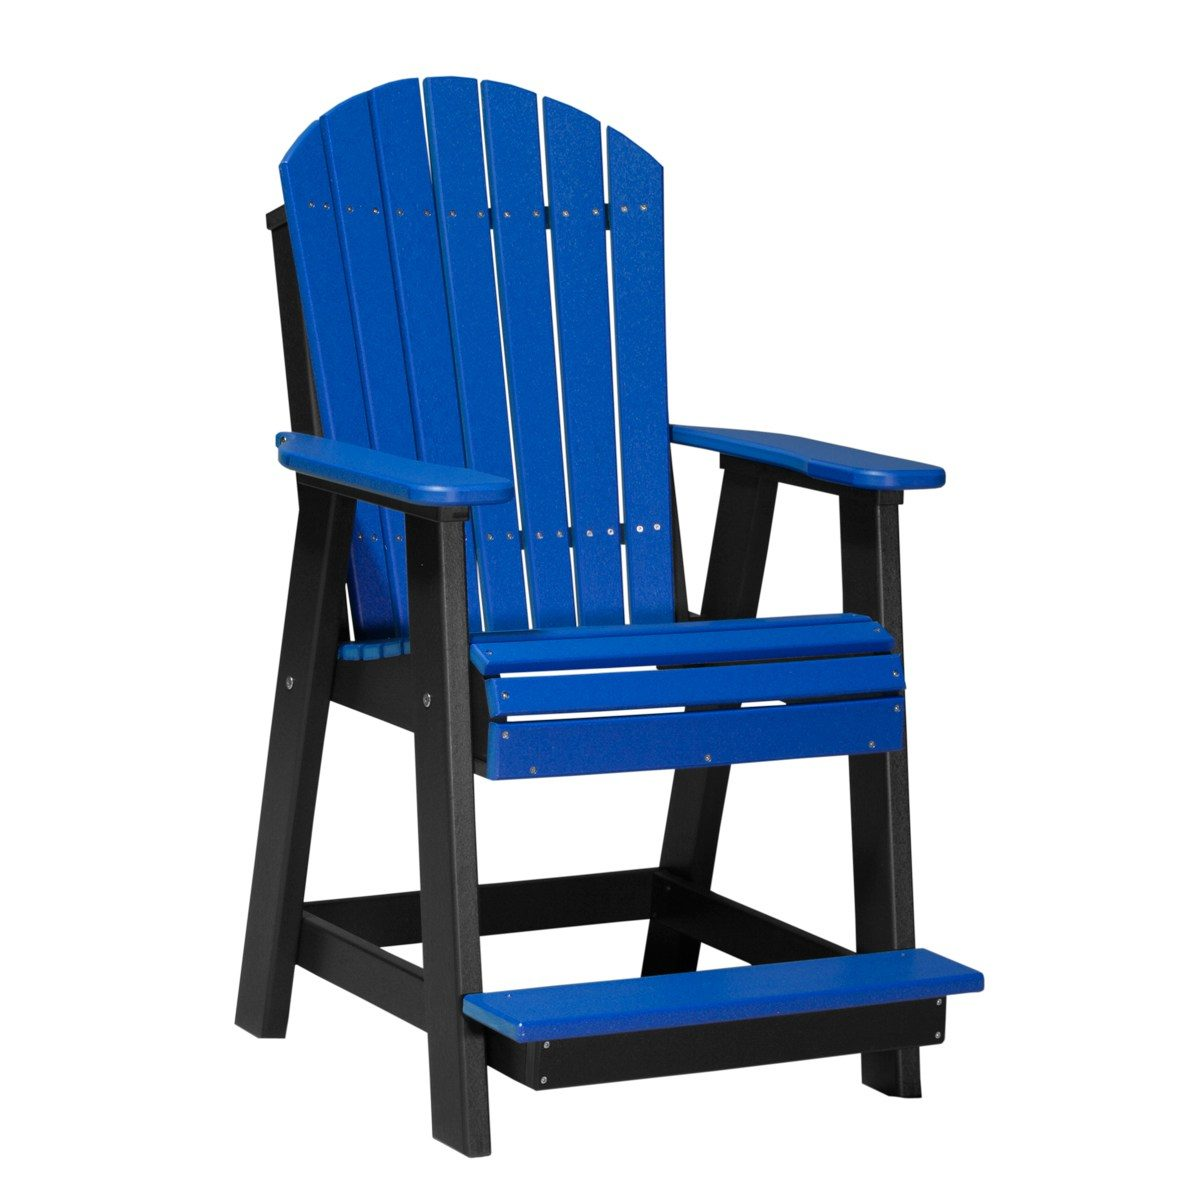 Adirondack Balcony Chair - Blue & Black